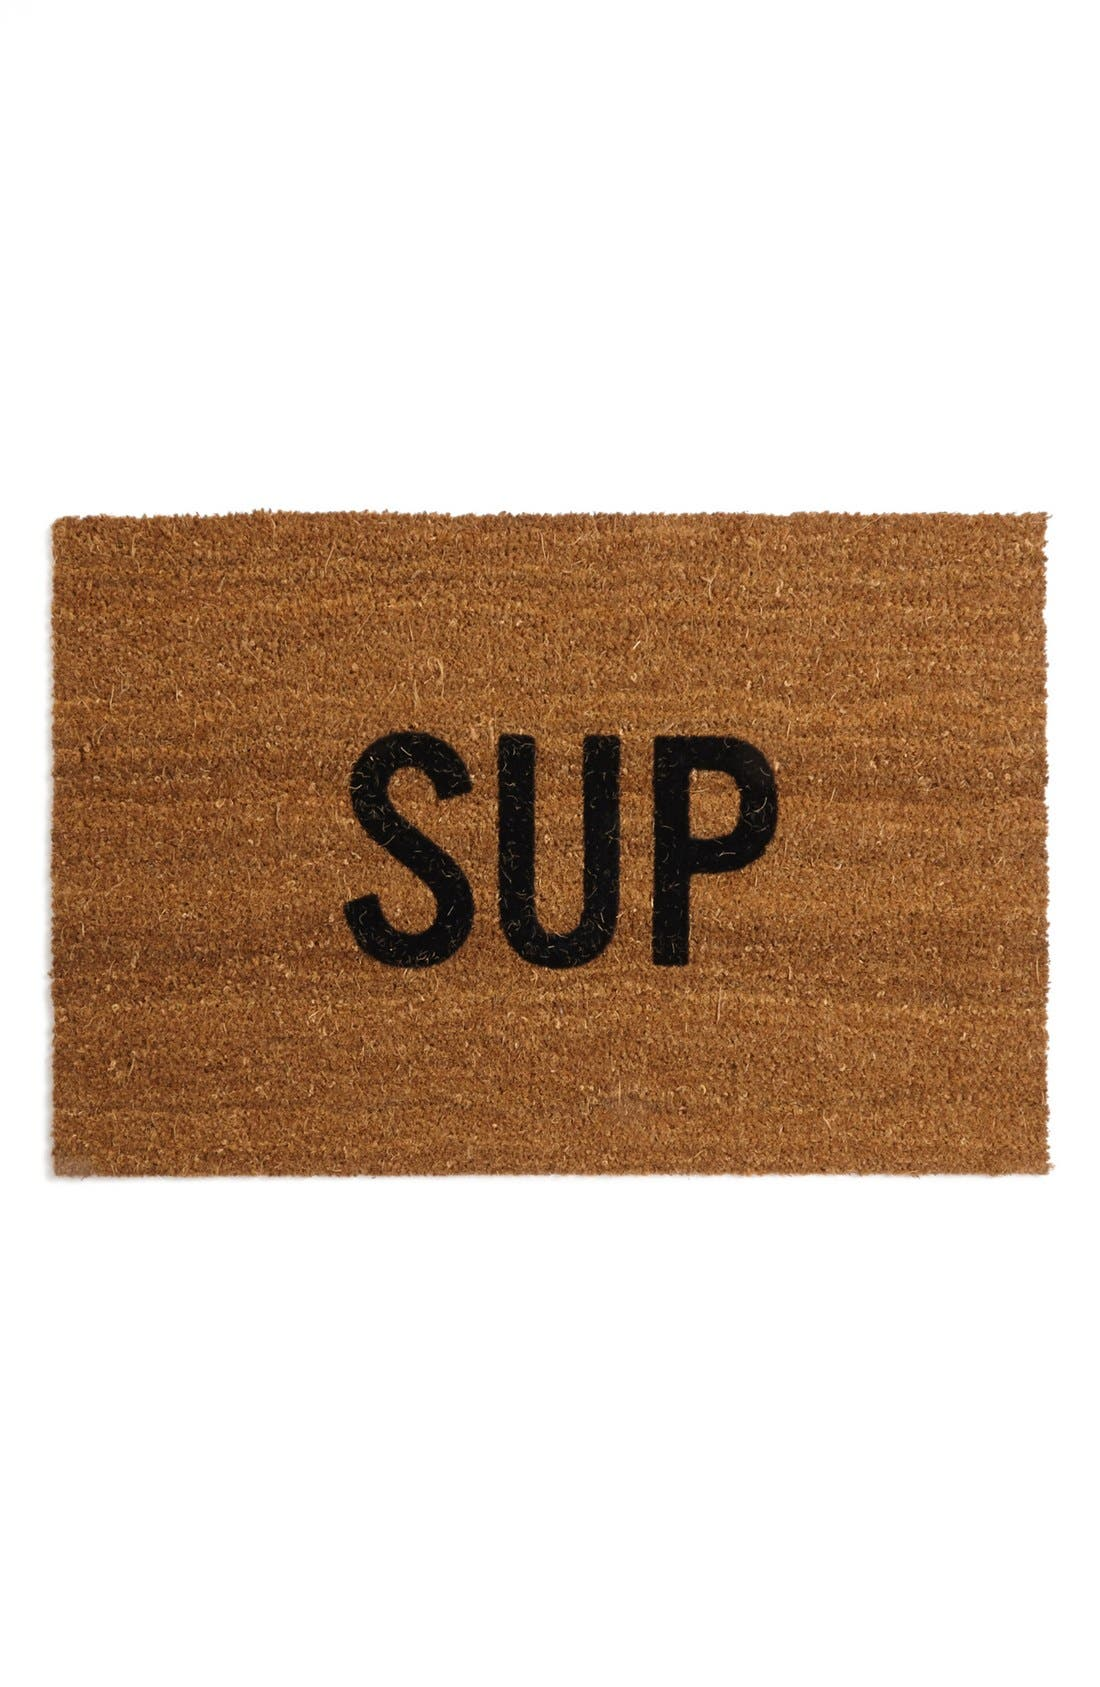 Alternate Image 1 Selected - Reed Wilson Design 'Sup' Doormat